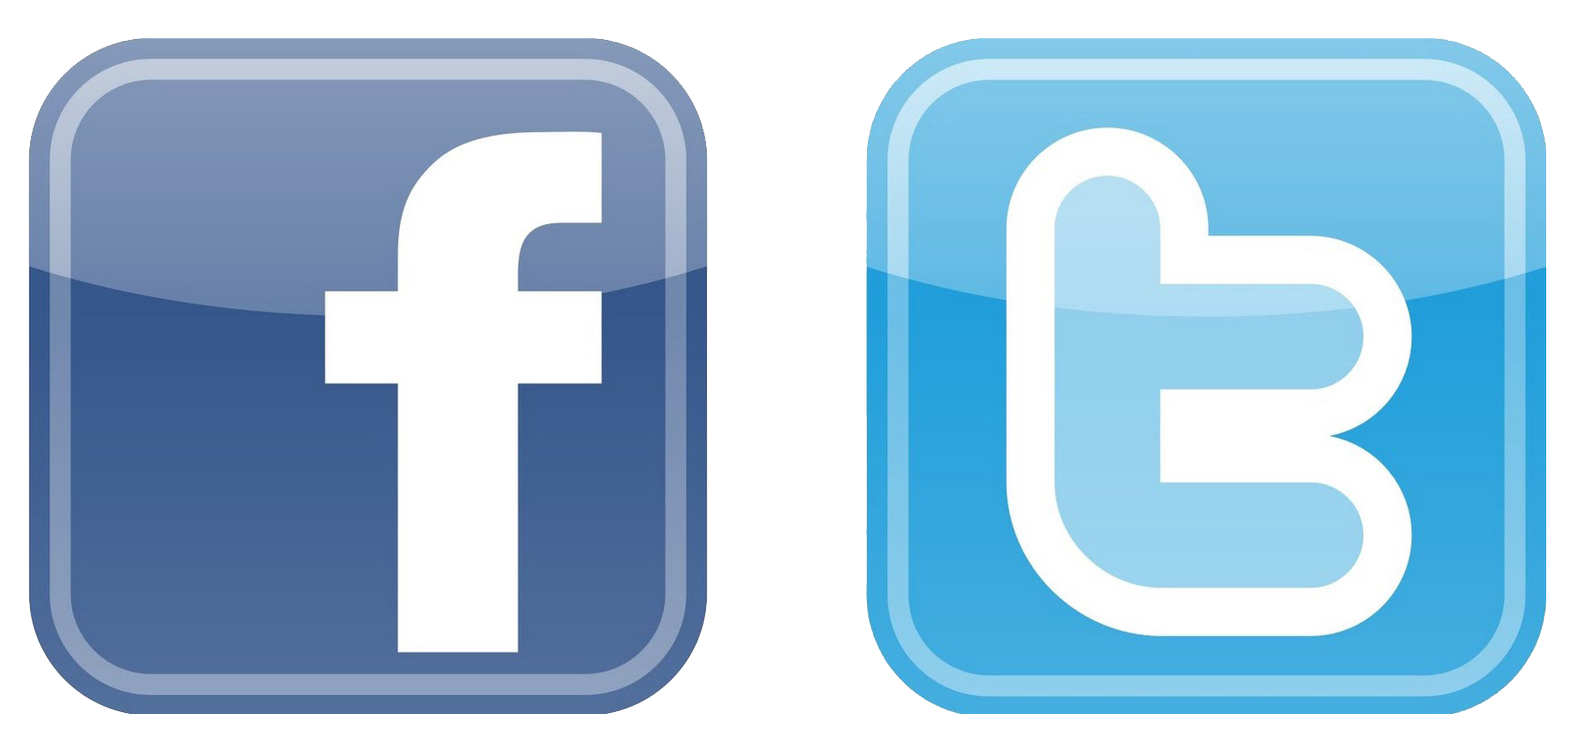 Facebook grid clipart banner royalty free library Facebook Clipart & Look At Clip Art Images - ClipartLook banner royalty free library